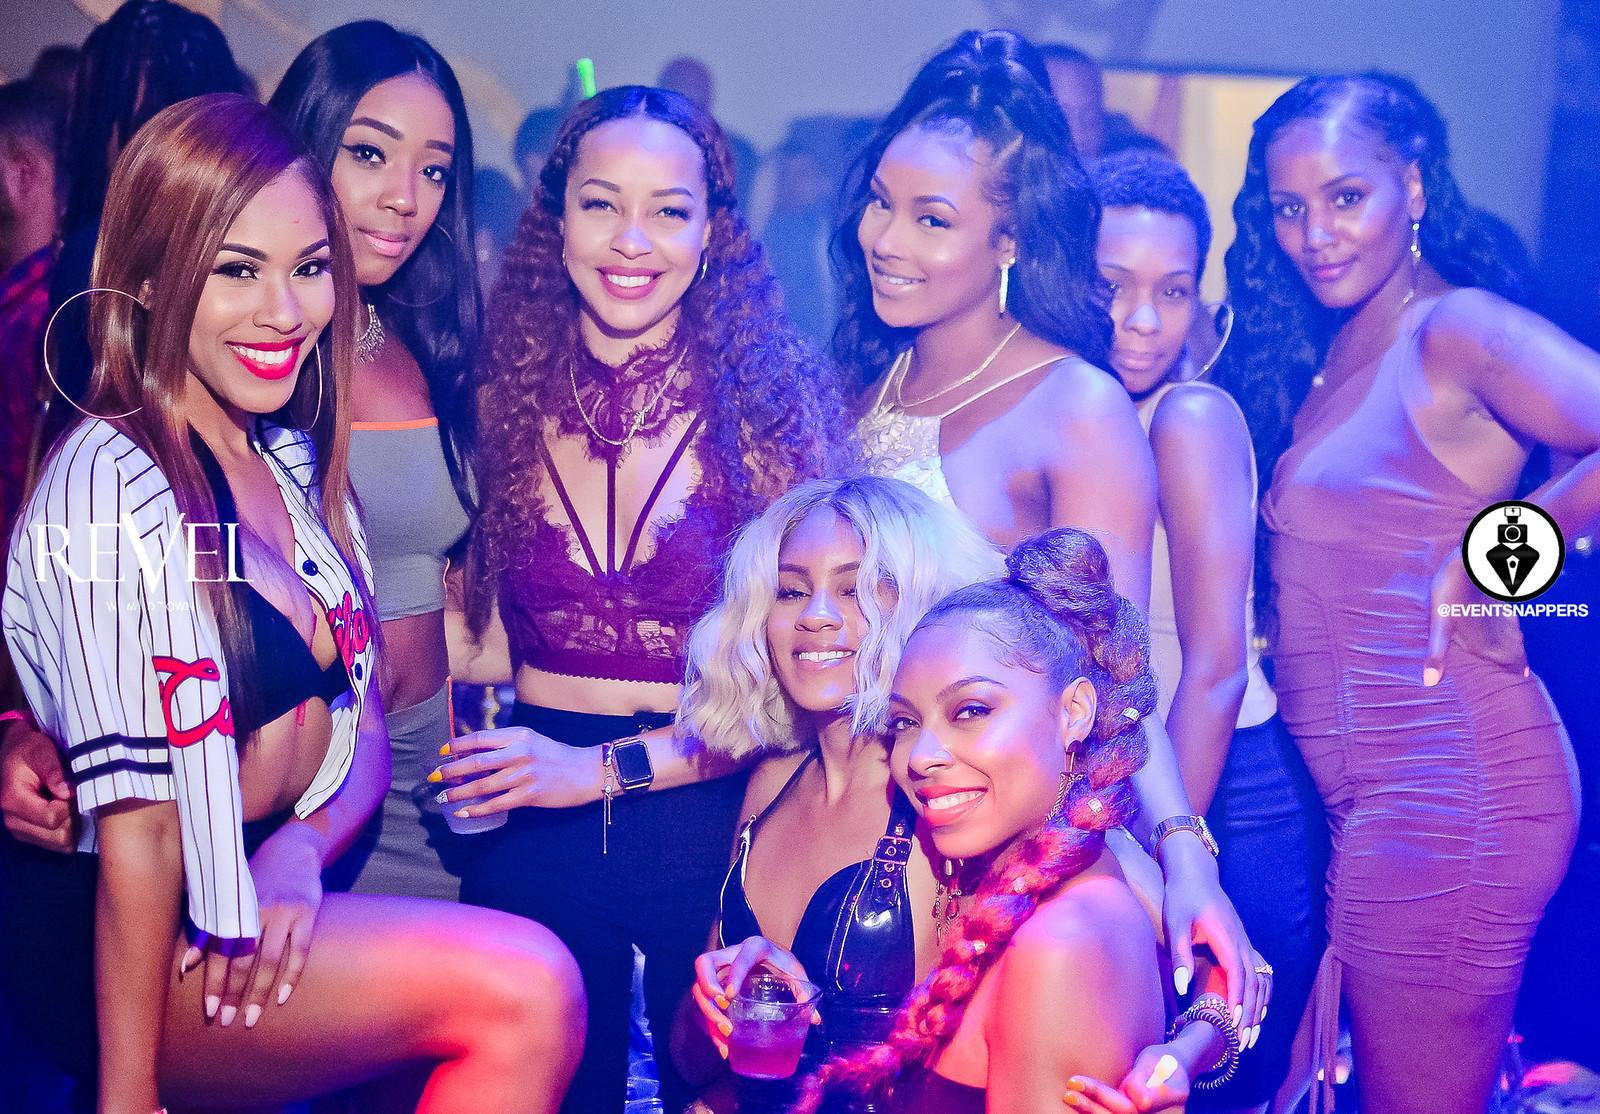 Glamorous pretty party girls have a blast in a club